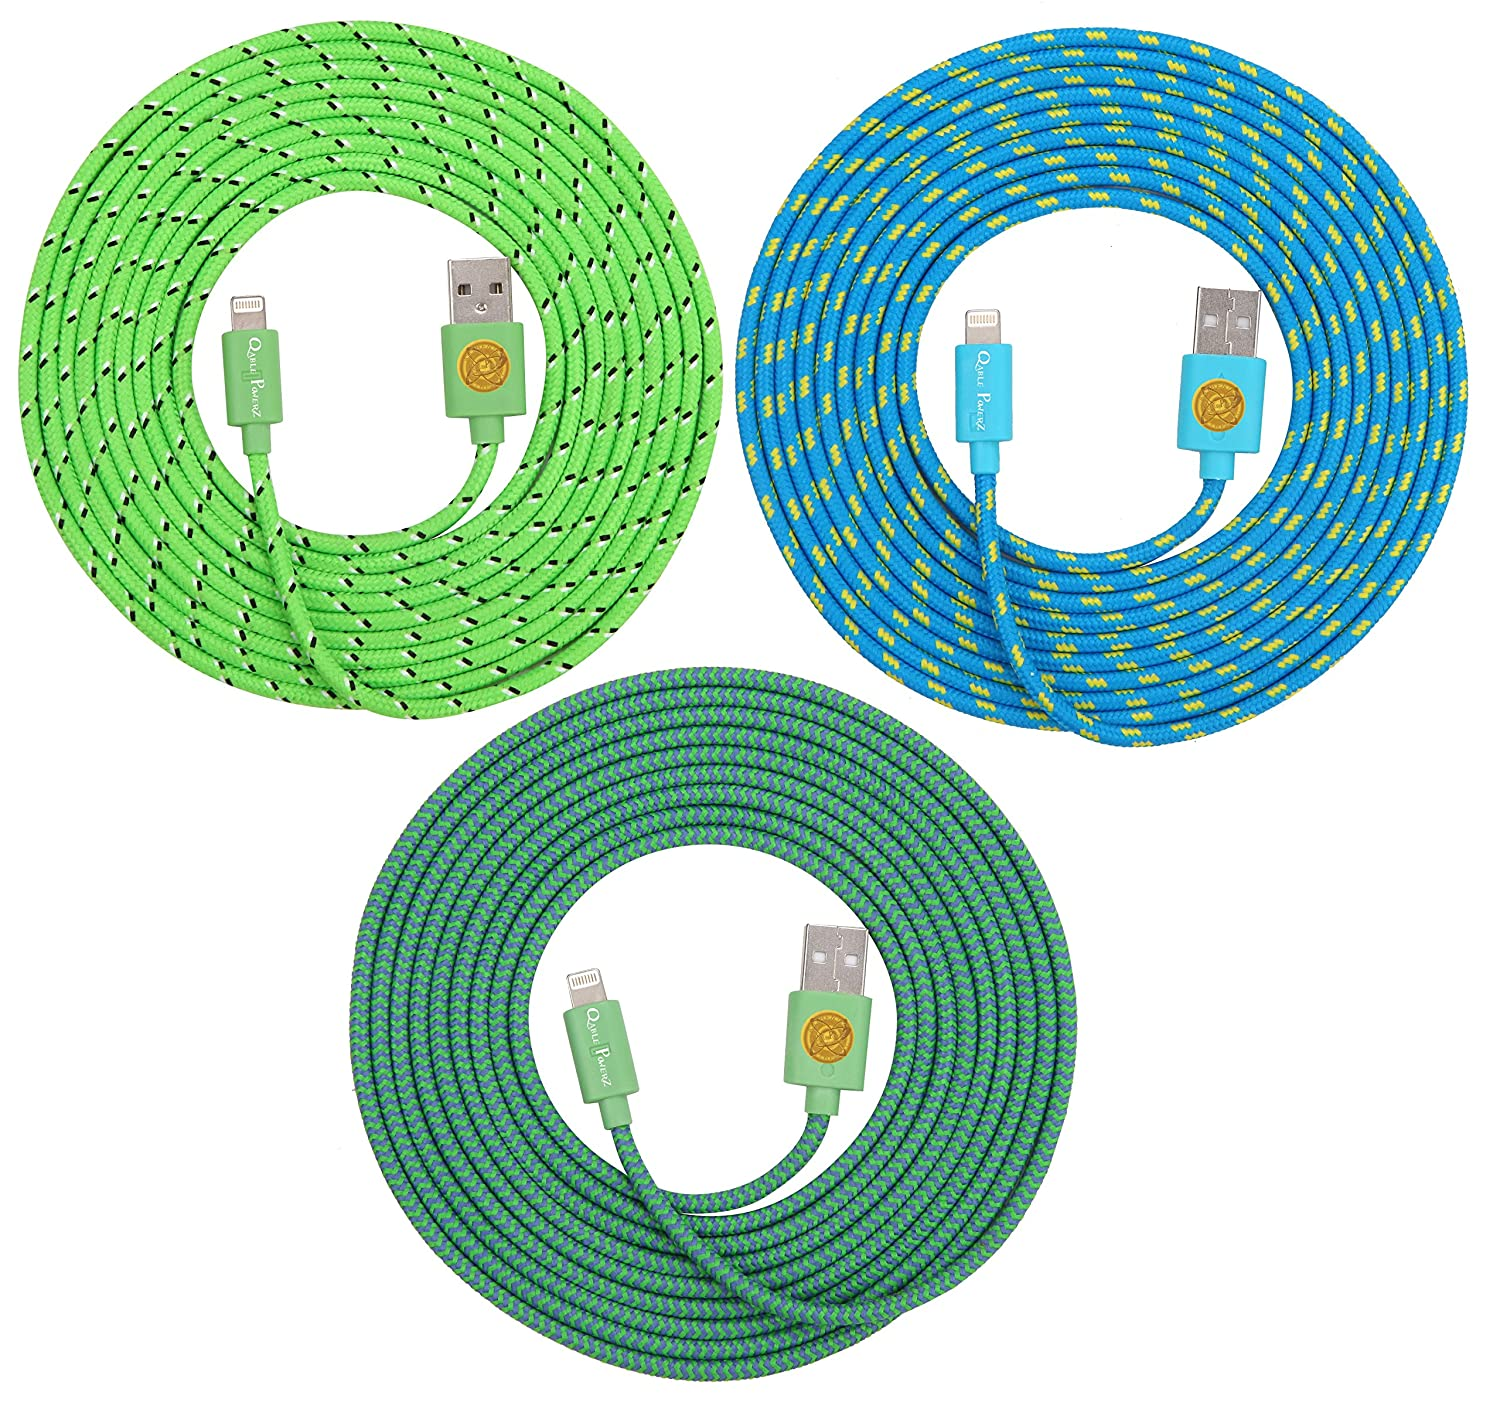 High Quality, 10ft(3m) Braided Nylon Lightning Charging Cables for Apple iPhone 5 5C 5S,iPhone 6, 6 Plus, iPad 4 Mini, iPod Touch 5/Nano 7, 8 pin to USB - 3pack (teal/green/blue)